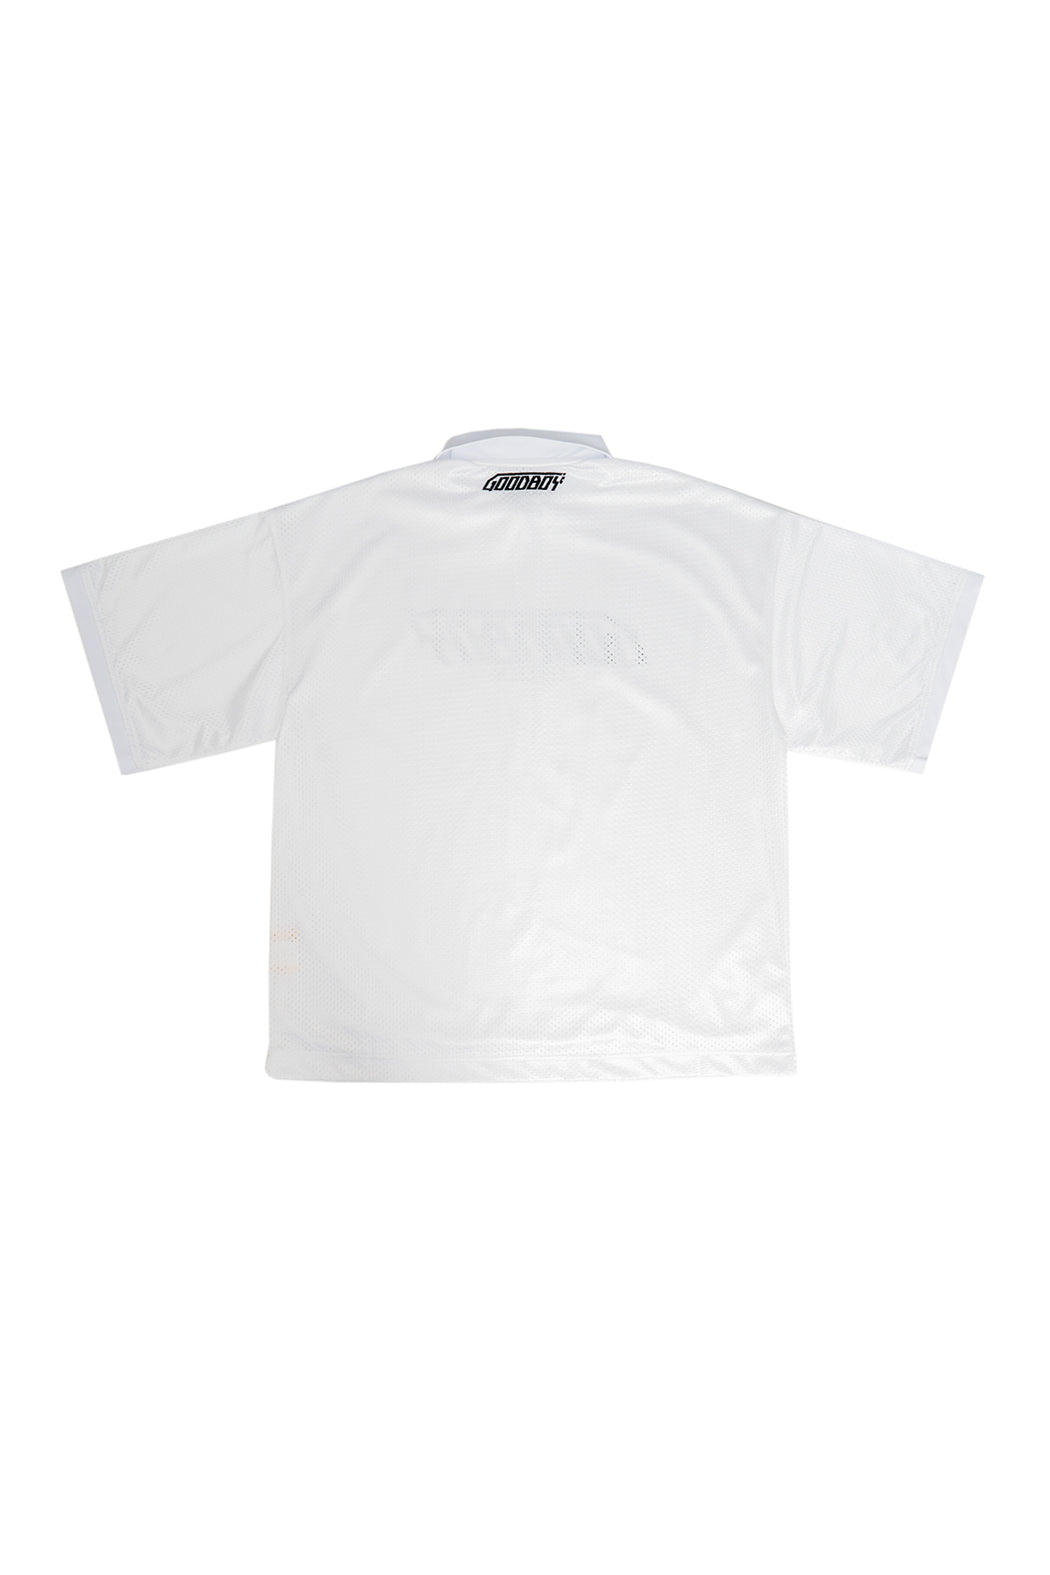 Oversized Mesh PK Shirts - White